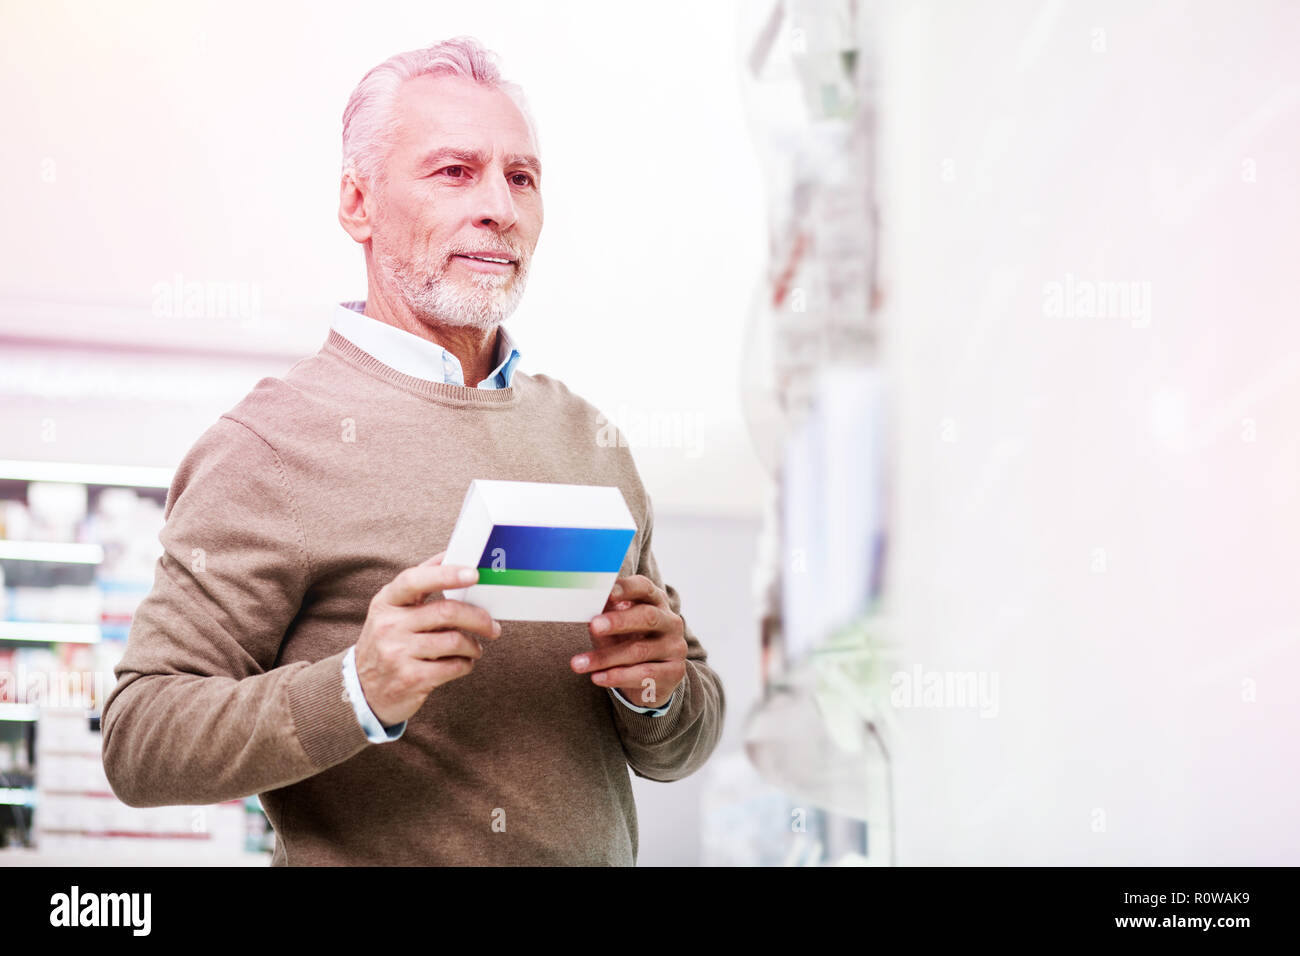 Pondering elder client carrying a package of prescribed pills - Stock Image